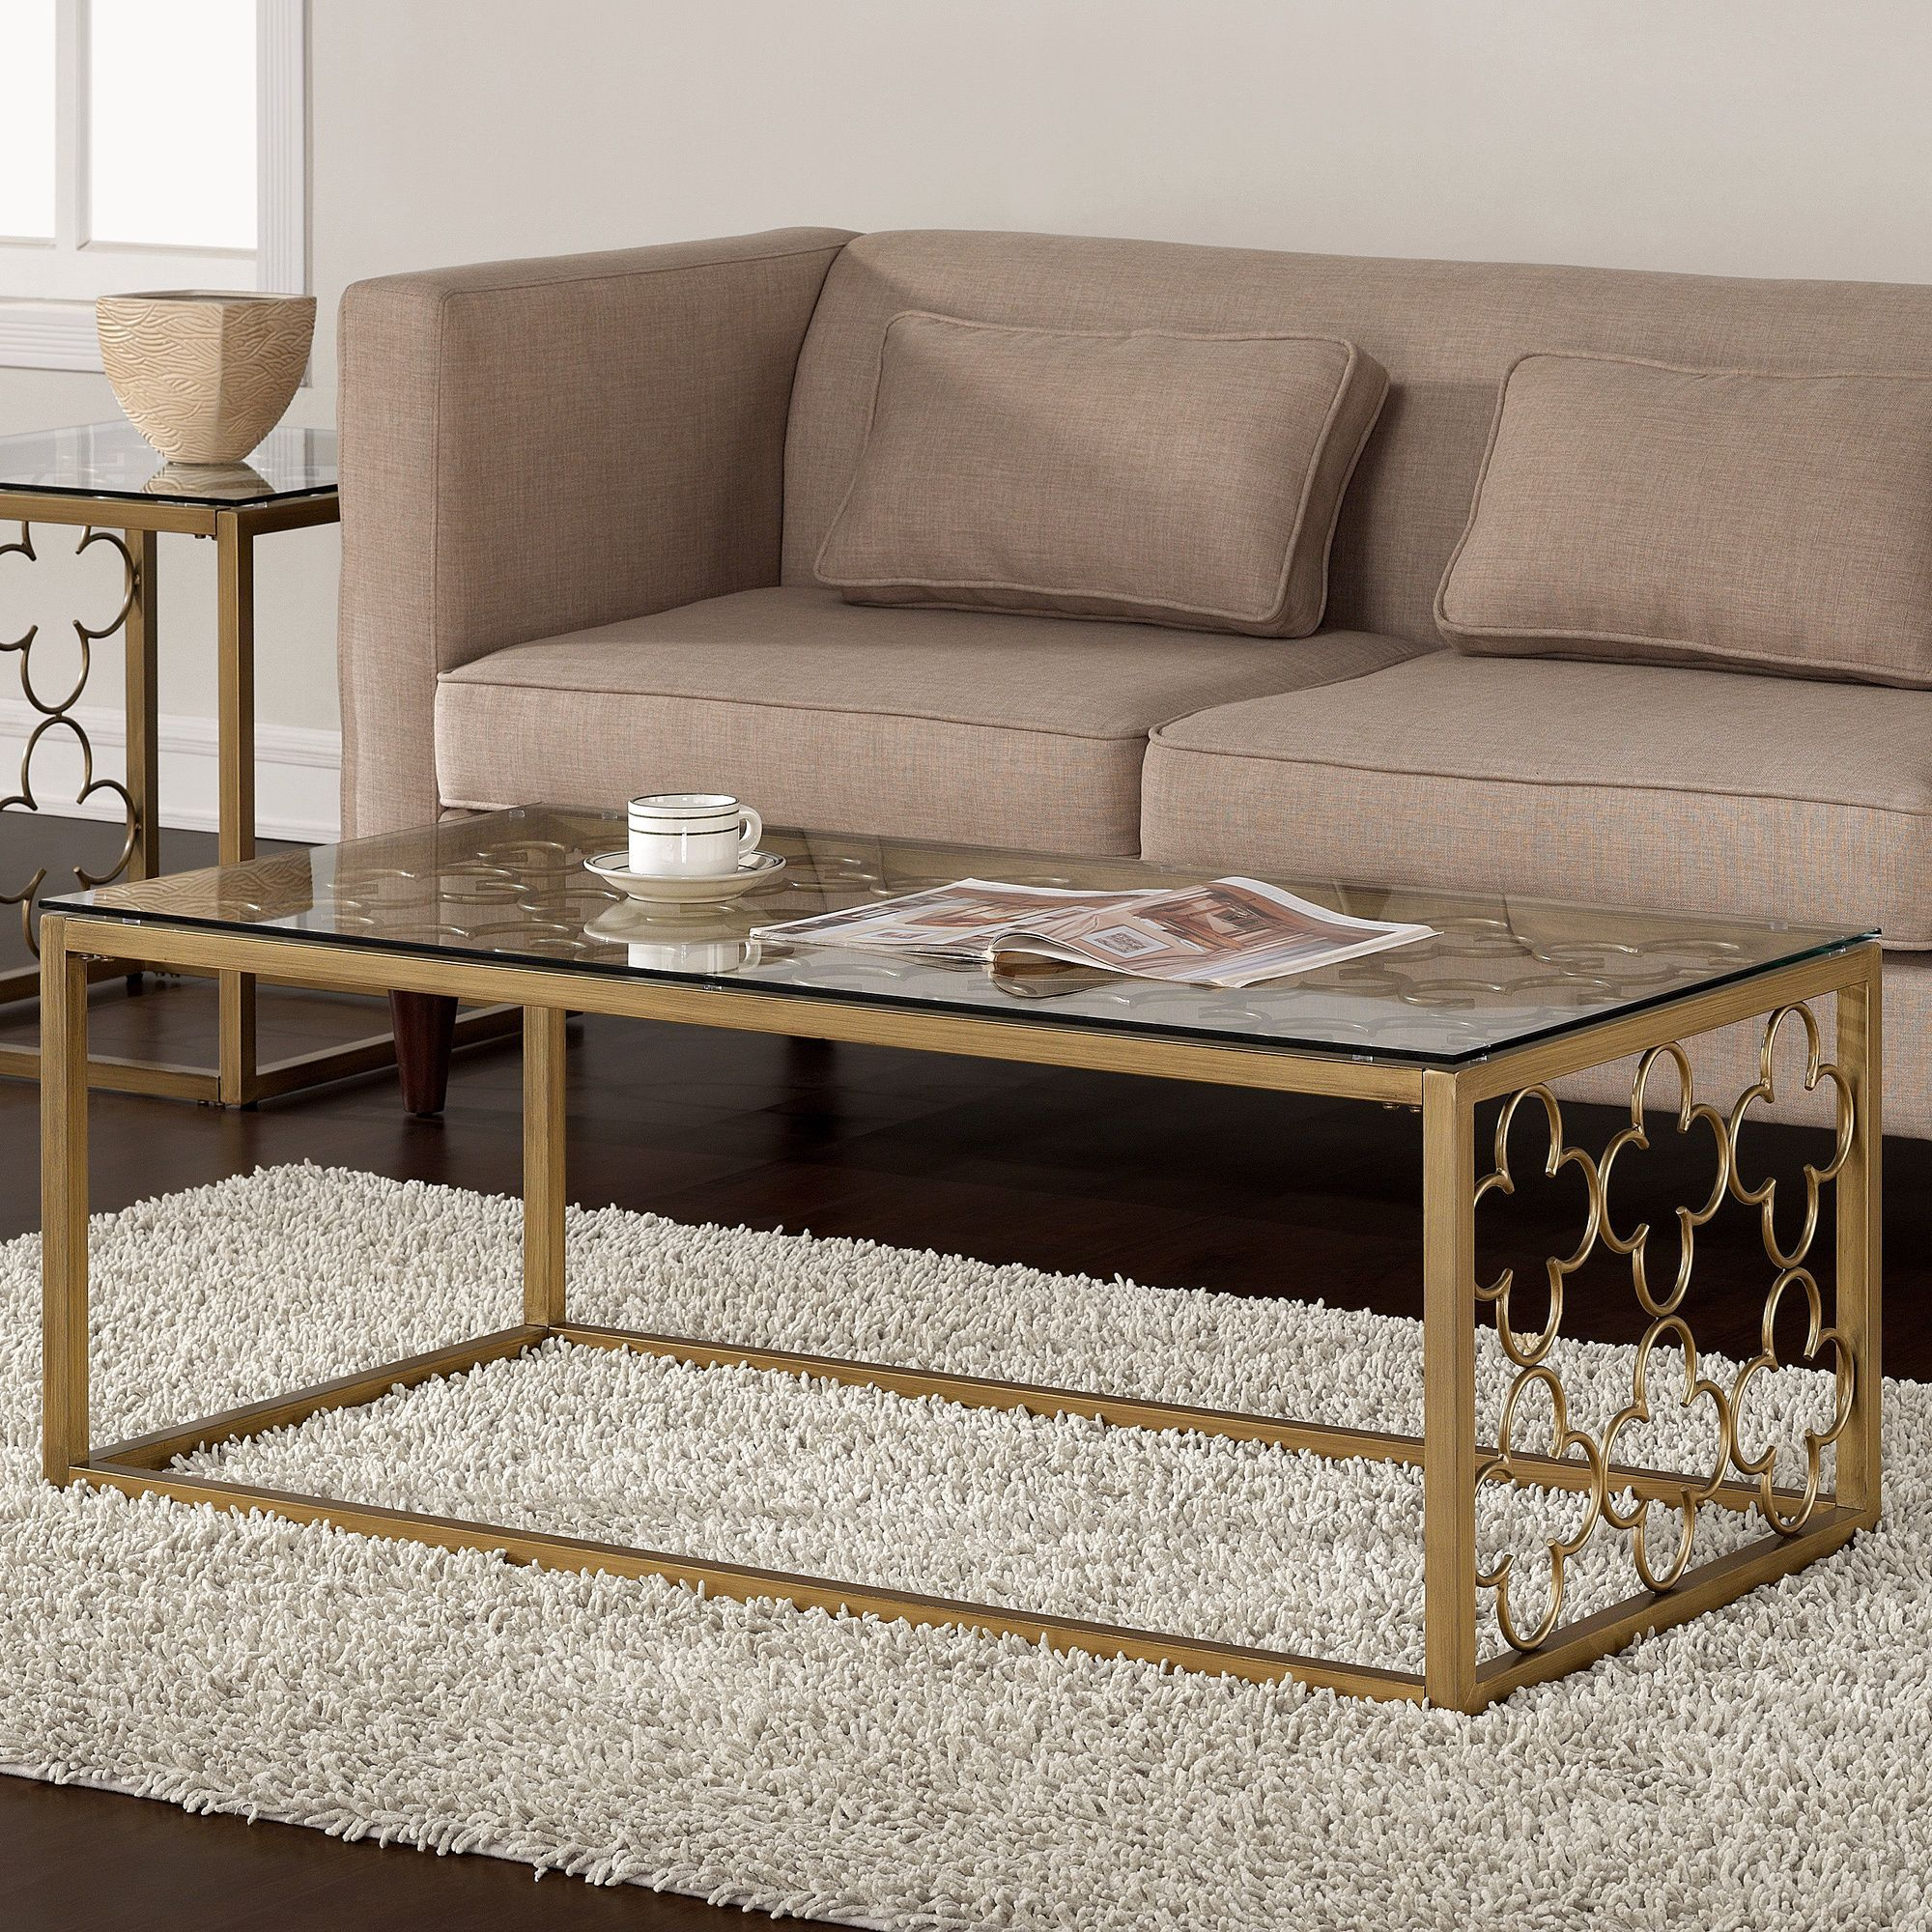 Quatrefoil goldtone metal and glass coffee table by i love living sofa end tables beautiful Metal and glass coffee table